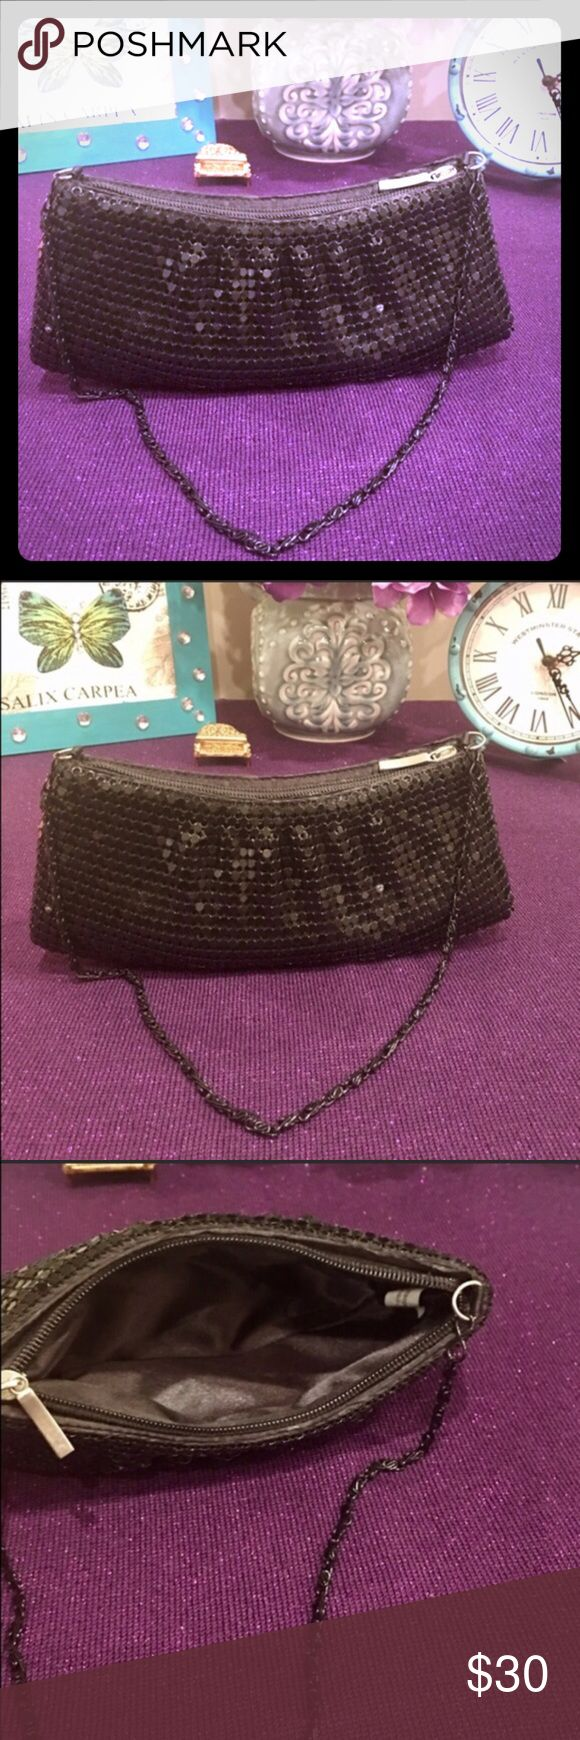 "Vintage Black duo 2 for 1 sequin Clutch & coin Gorgeous Vintage chained zipper sequin clutch with vintage zippered coin purse both excellent condition! Slight wear signs vintage Clutch 8.5"" x 4"" .5""  coin purse 5"" x 4 "". Vintage Bags"